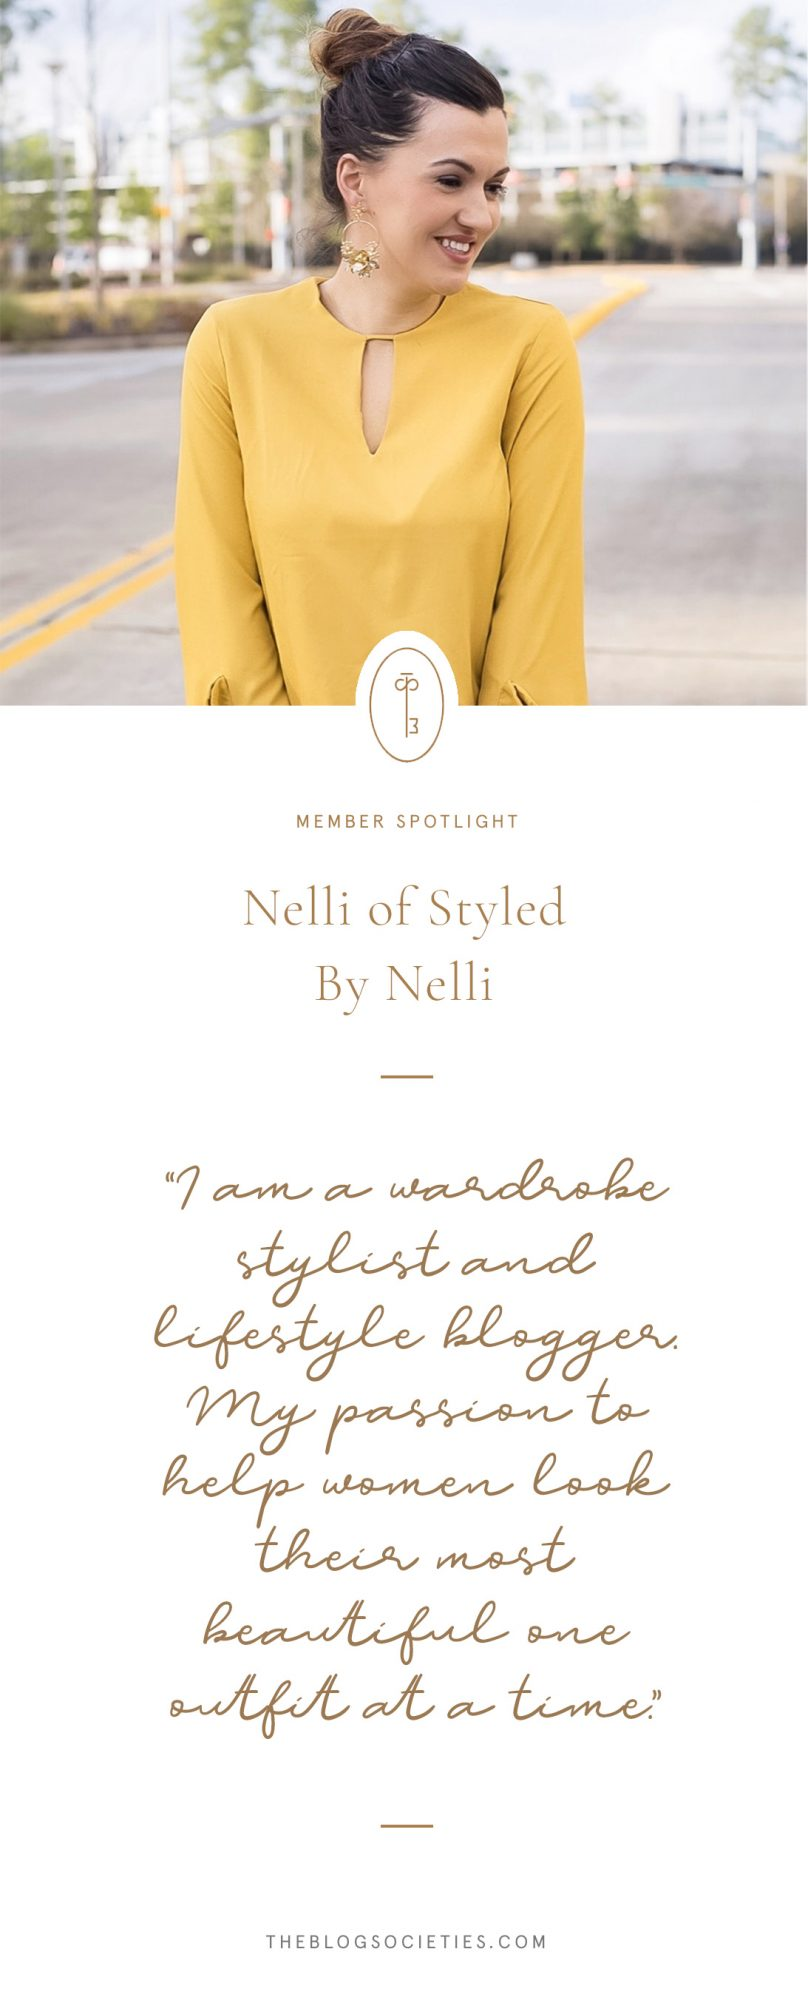 Styled By Nelli